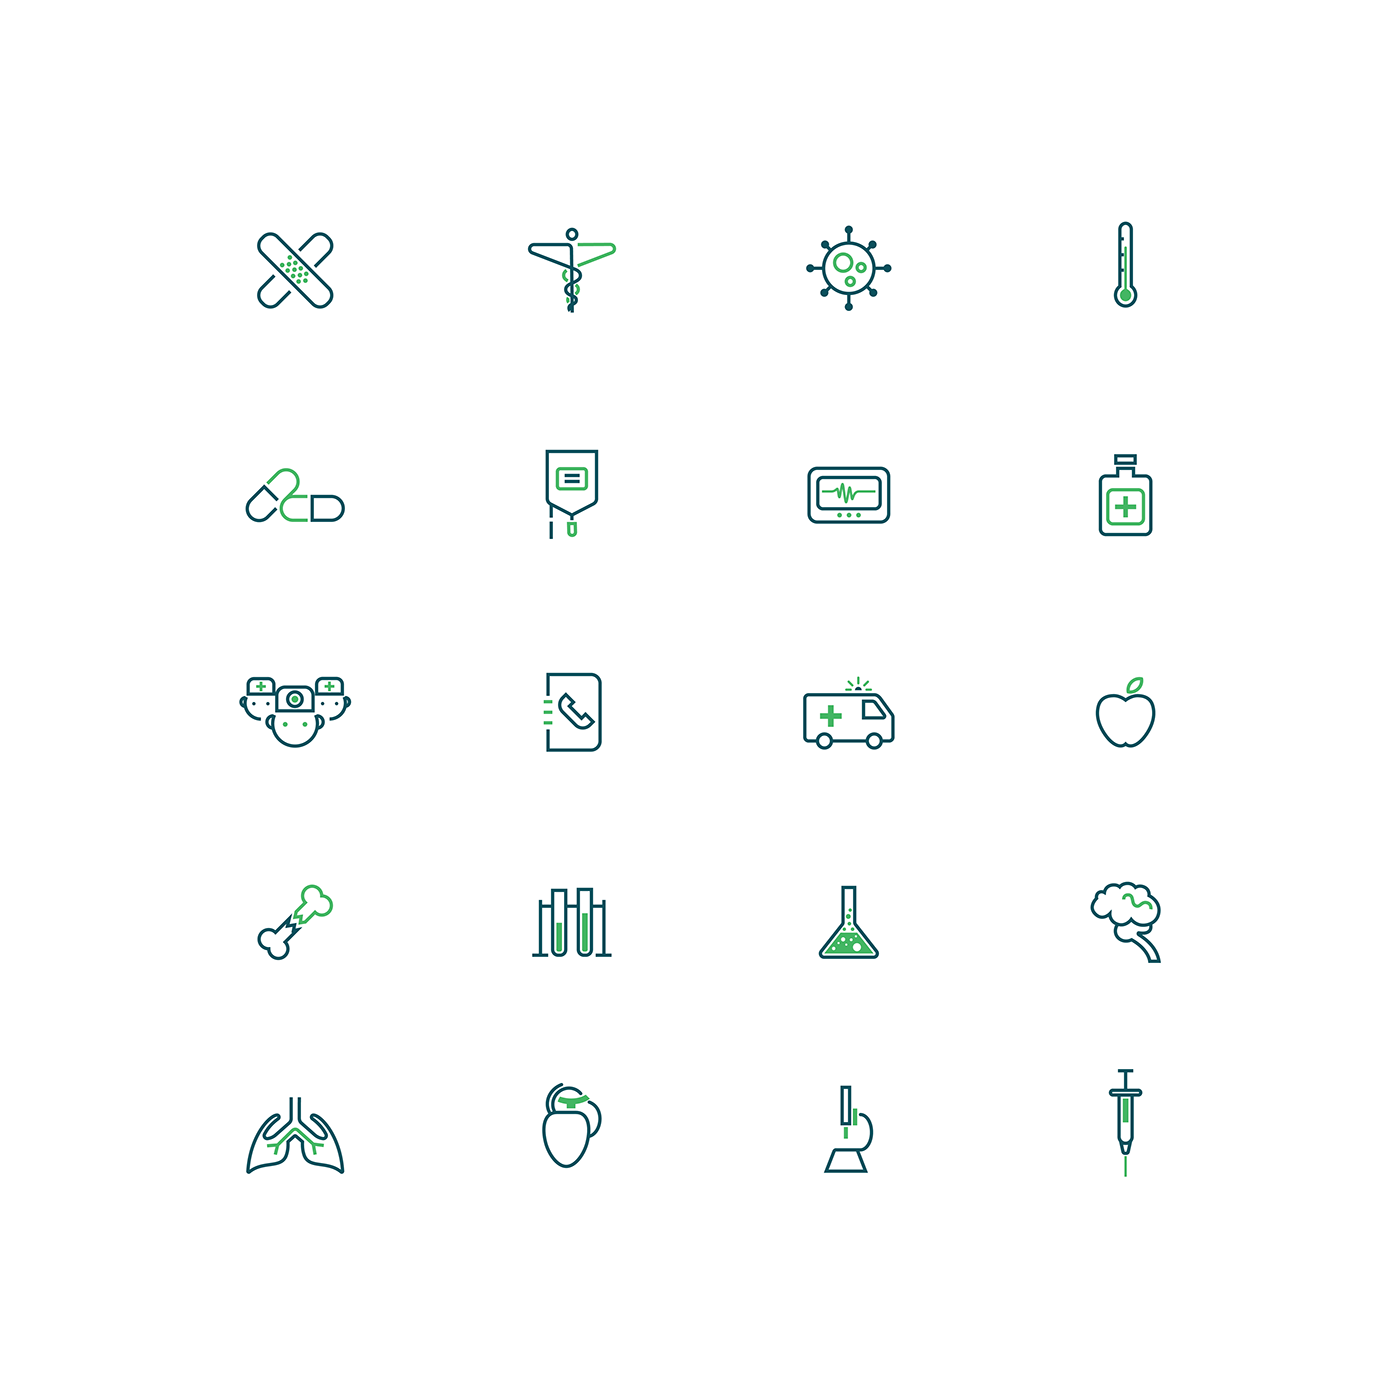 An icon set I did a while back with a medical theme in mind.